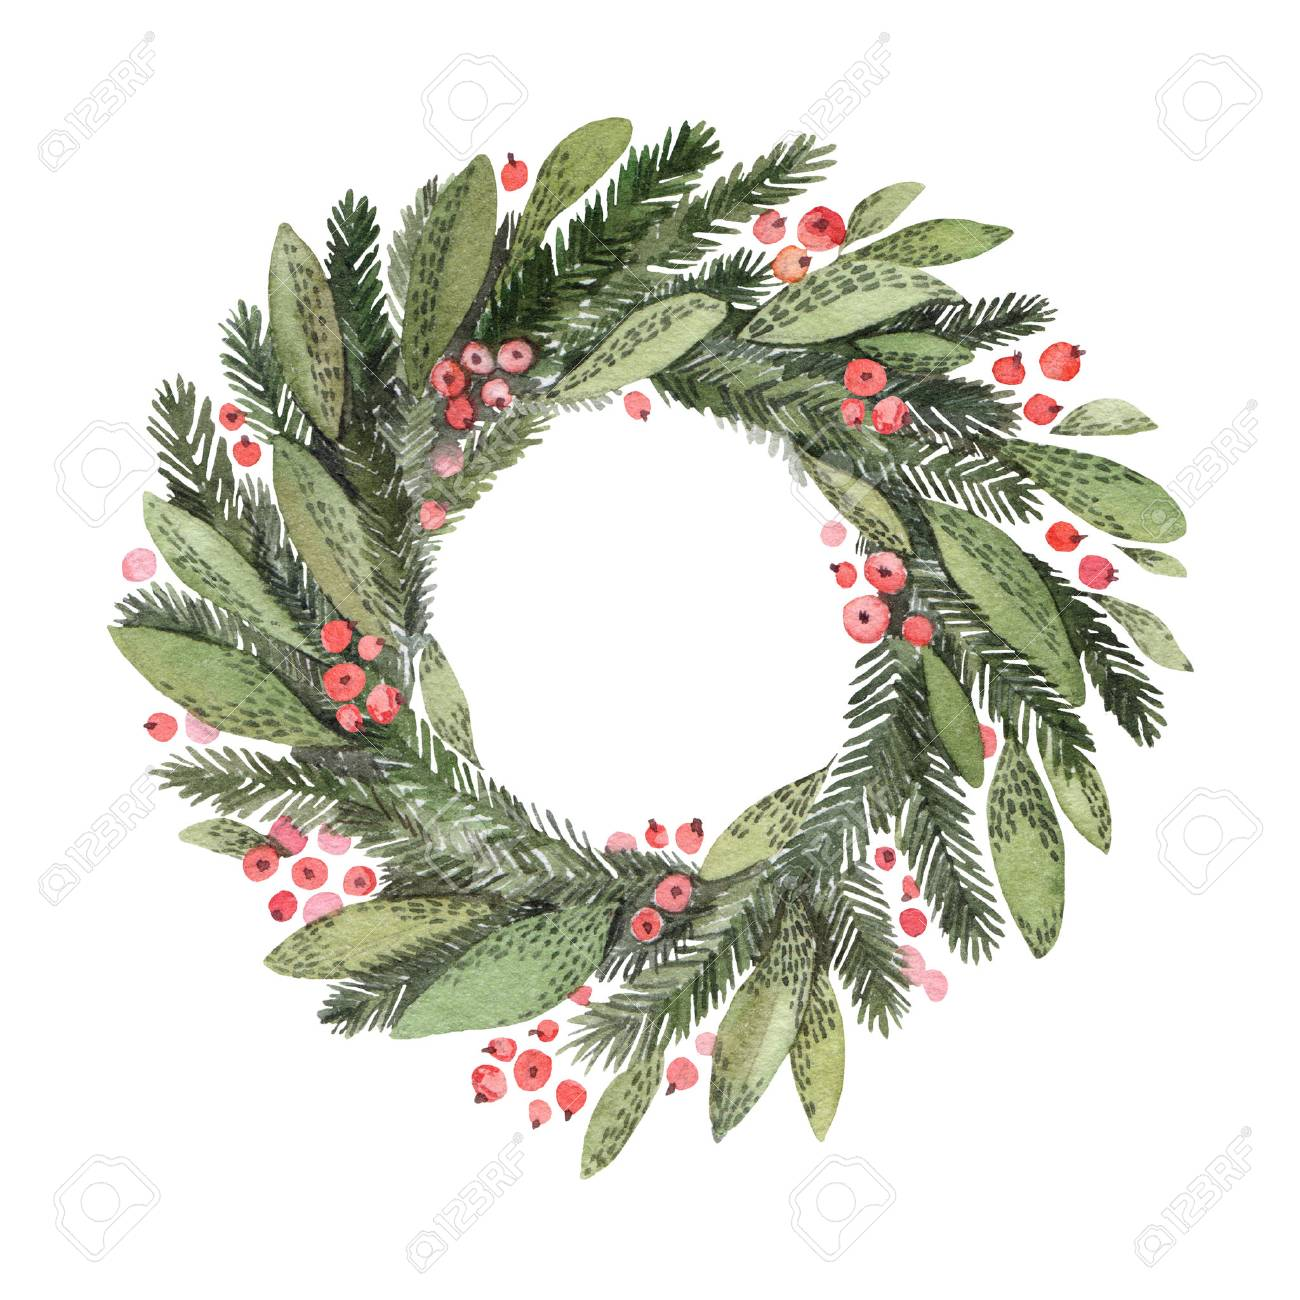 Watercolor illustration. Decorative christmas laurel wreath. Perfect for invitations, greeting cards, blogs, posters and more. Merry christmas and happy new year - 90747305